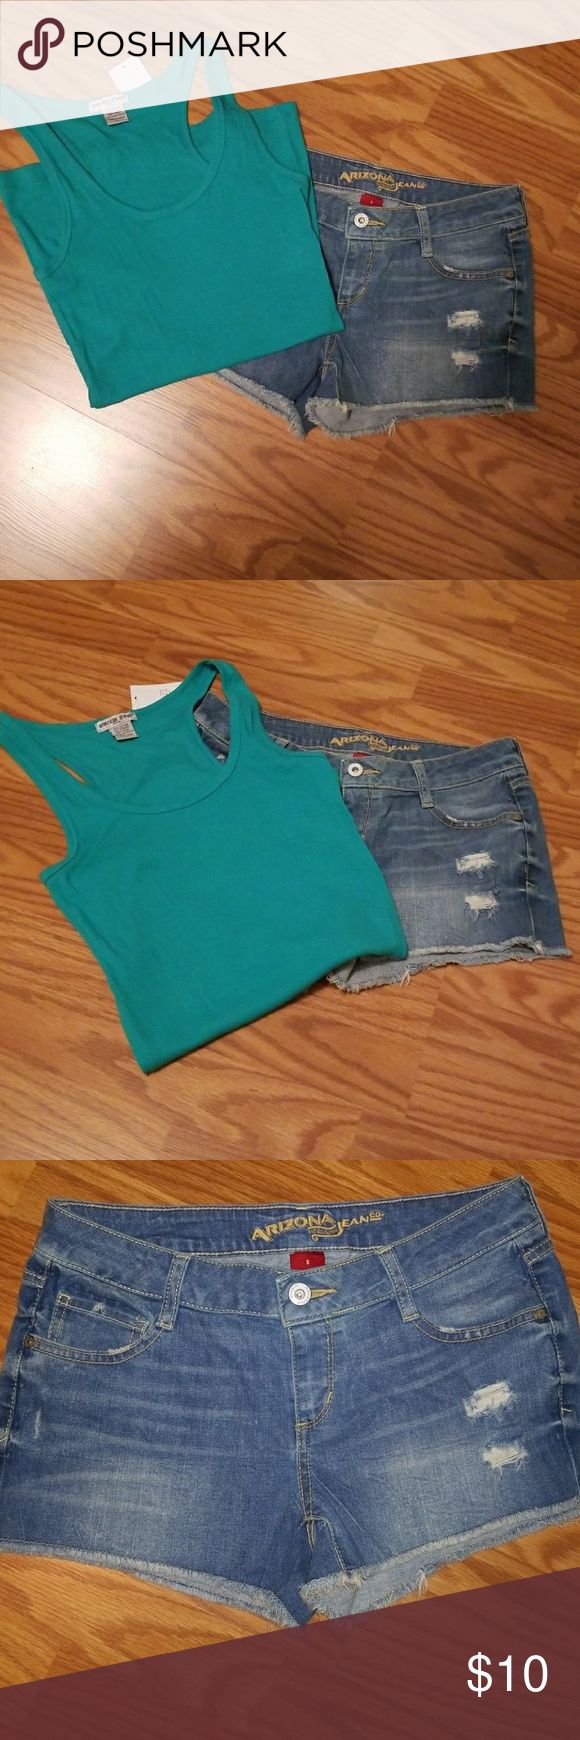 Arizona Jean Shorts && Ribbed Racerback Tank Shorty Jean shorts with mild distressing on the front left. Fraying at the bottom. Front button and zipper closure. Two pockets on back side. Never been worn. Rue 21 ribbed racerback tank top in a beautiful green is included with this purchase. The tank top is NWT🎉 Tag reads Large, but runs small, like most Rue's merch. Great outfit!! Arizona Jean Company Shorts Jean Shorts